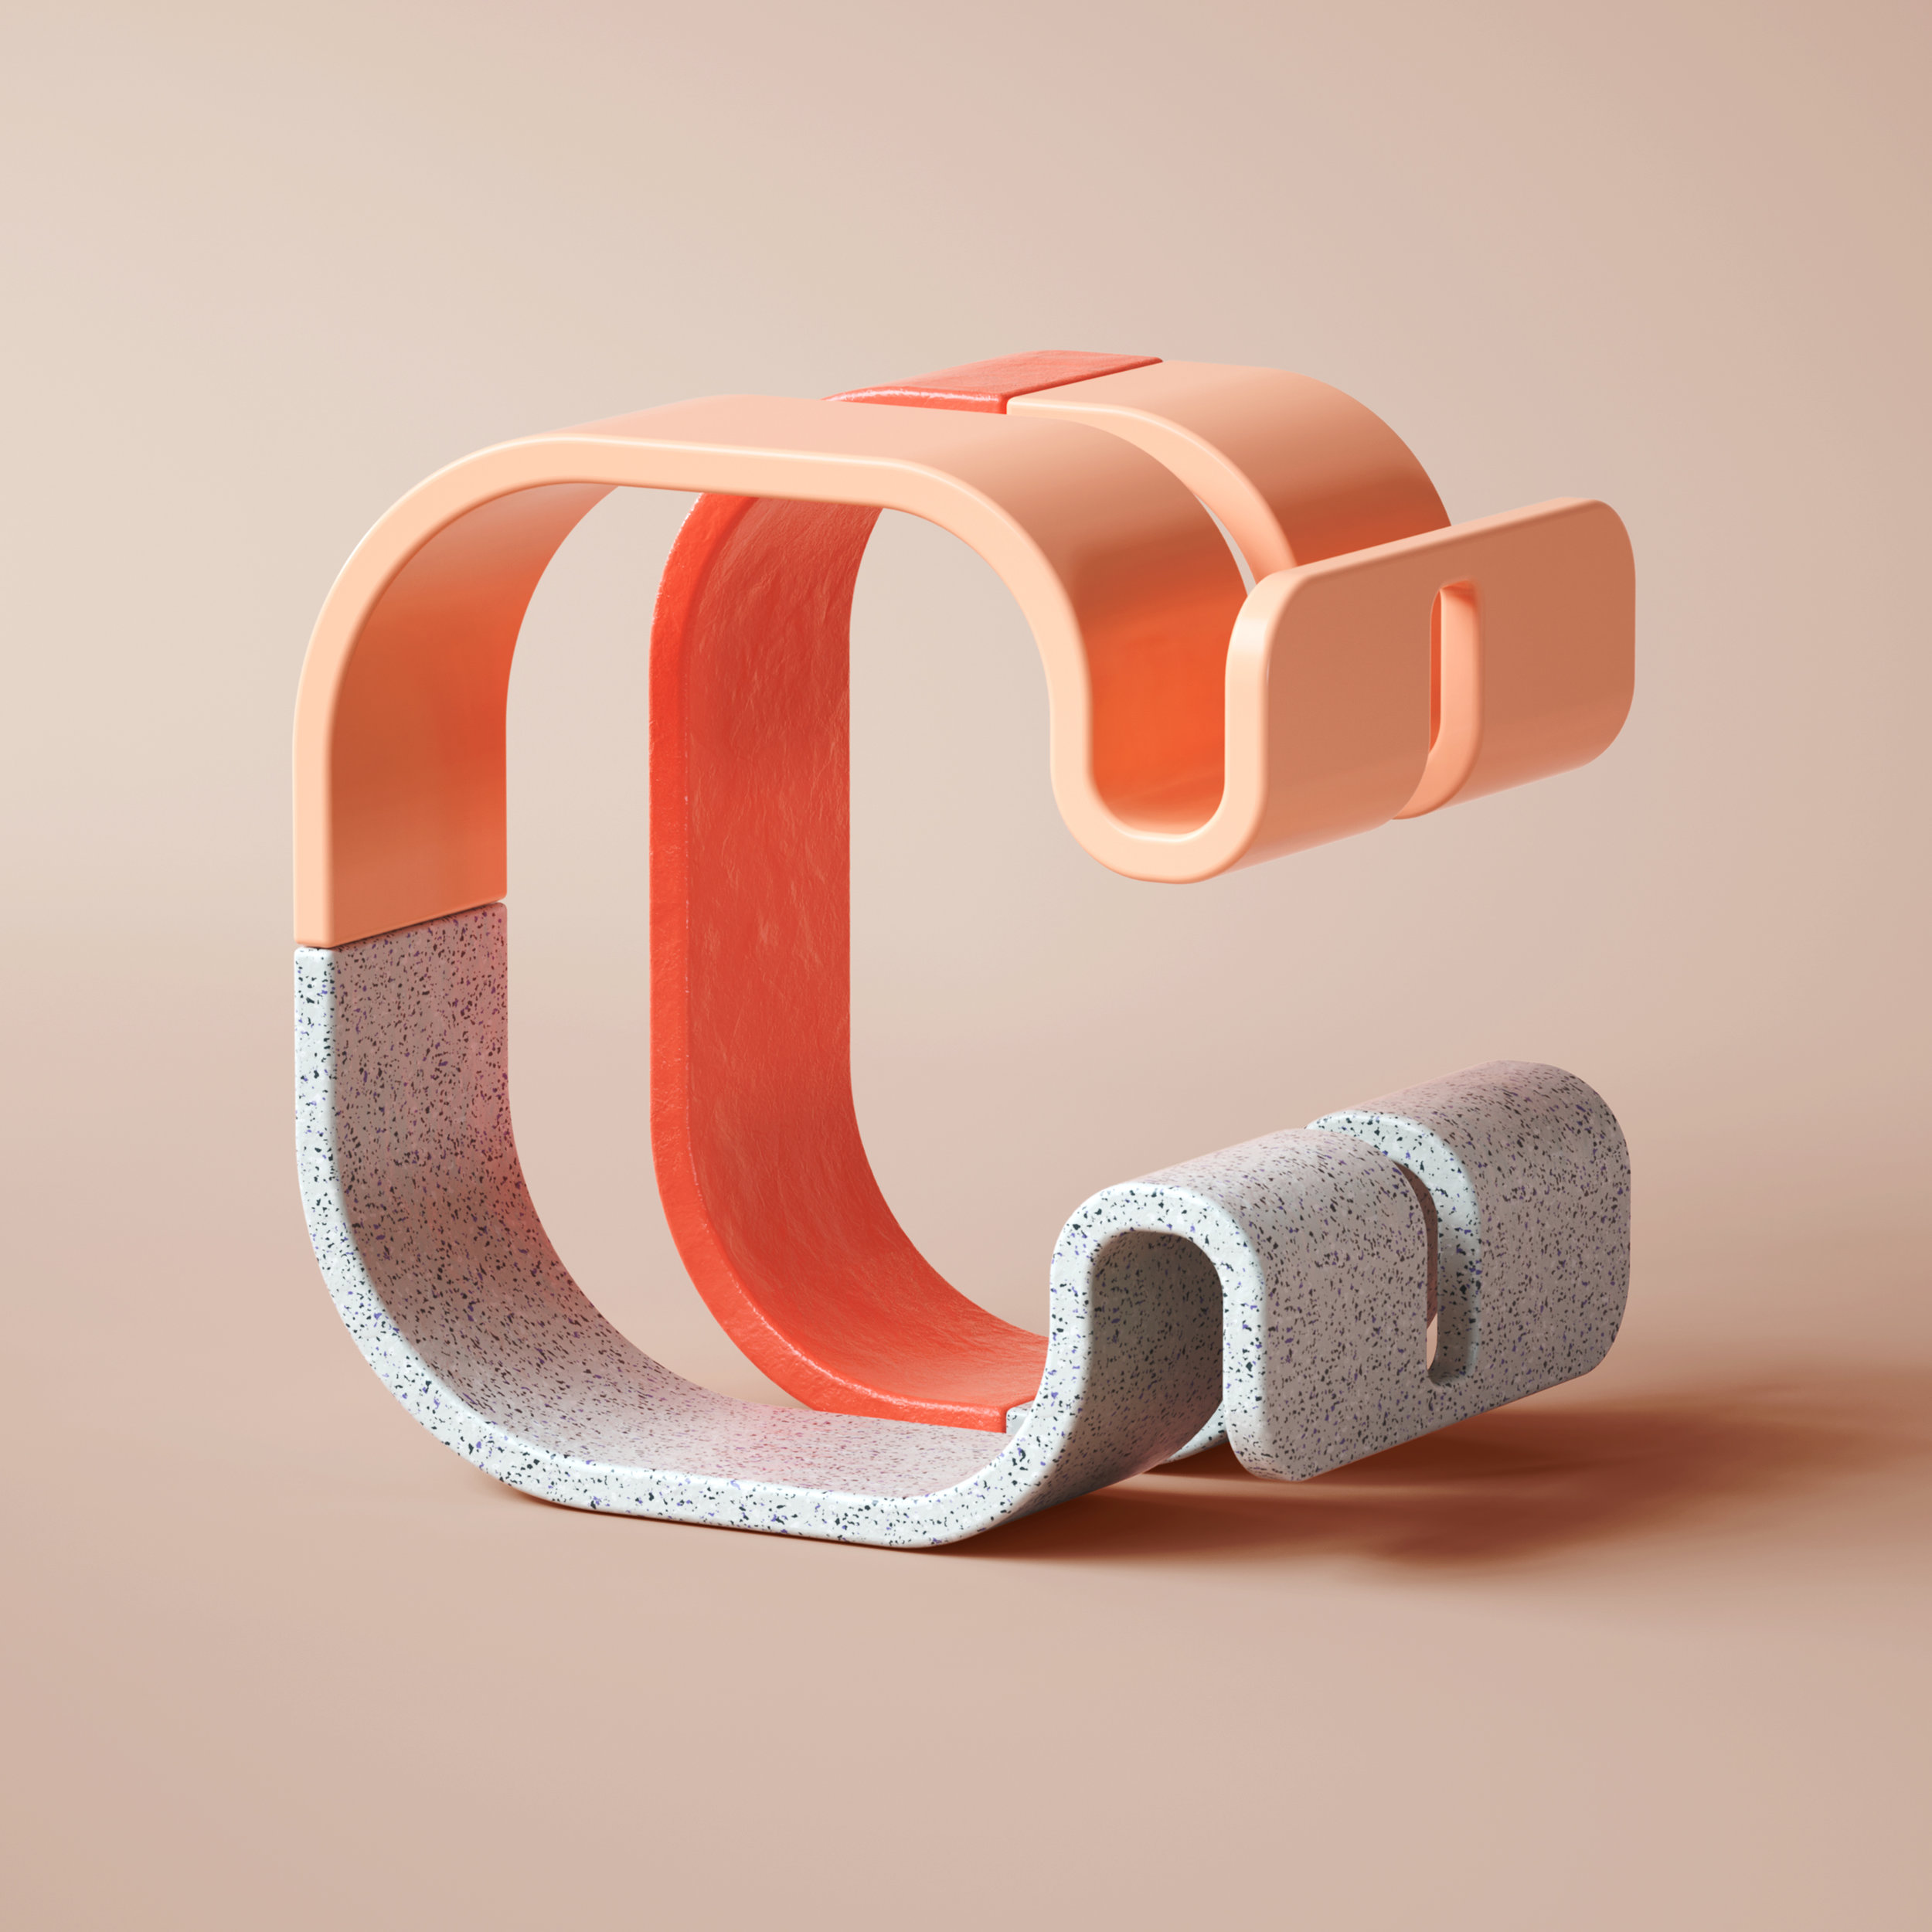 36 Days of Type 2019 - 3D Typeform letter C visual.